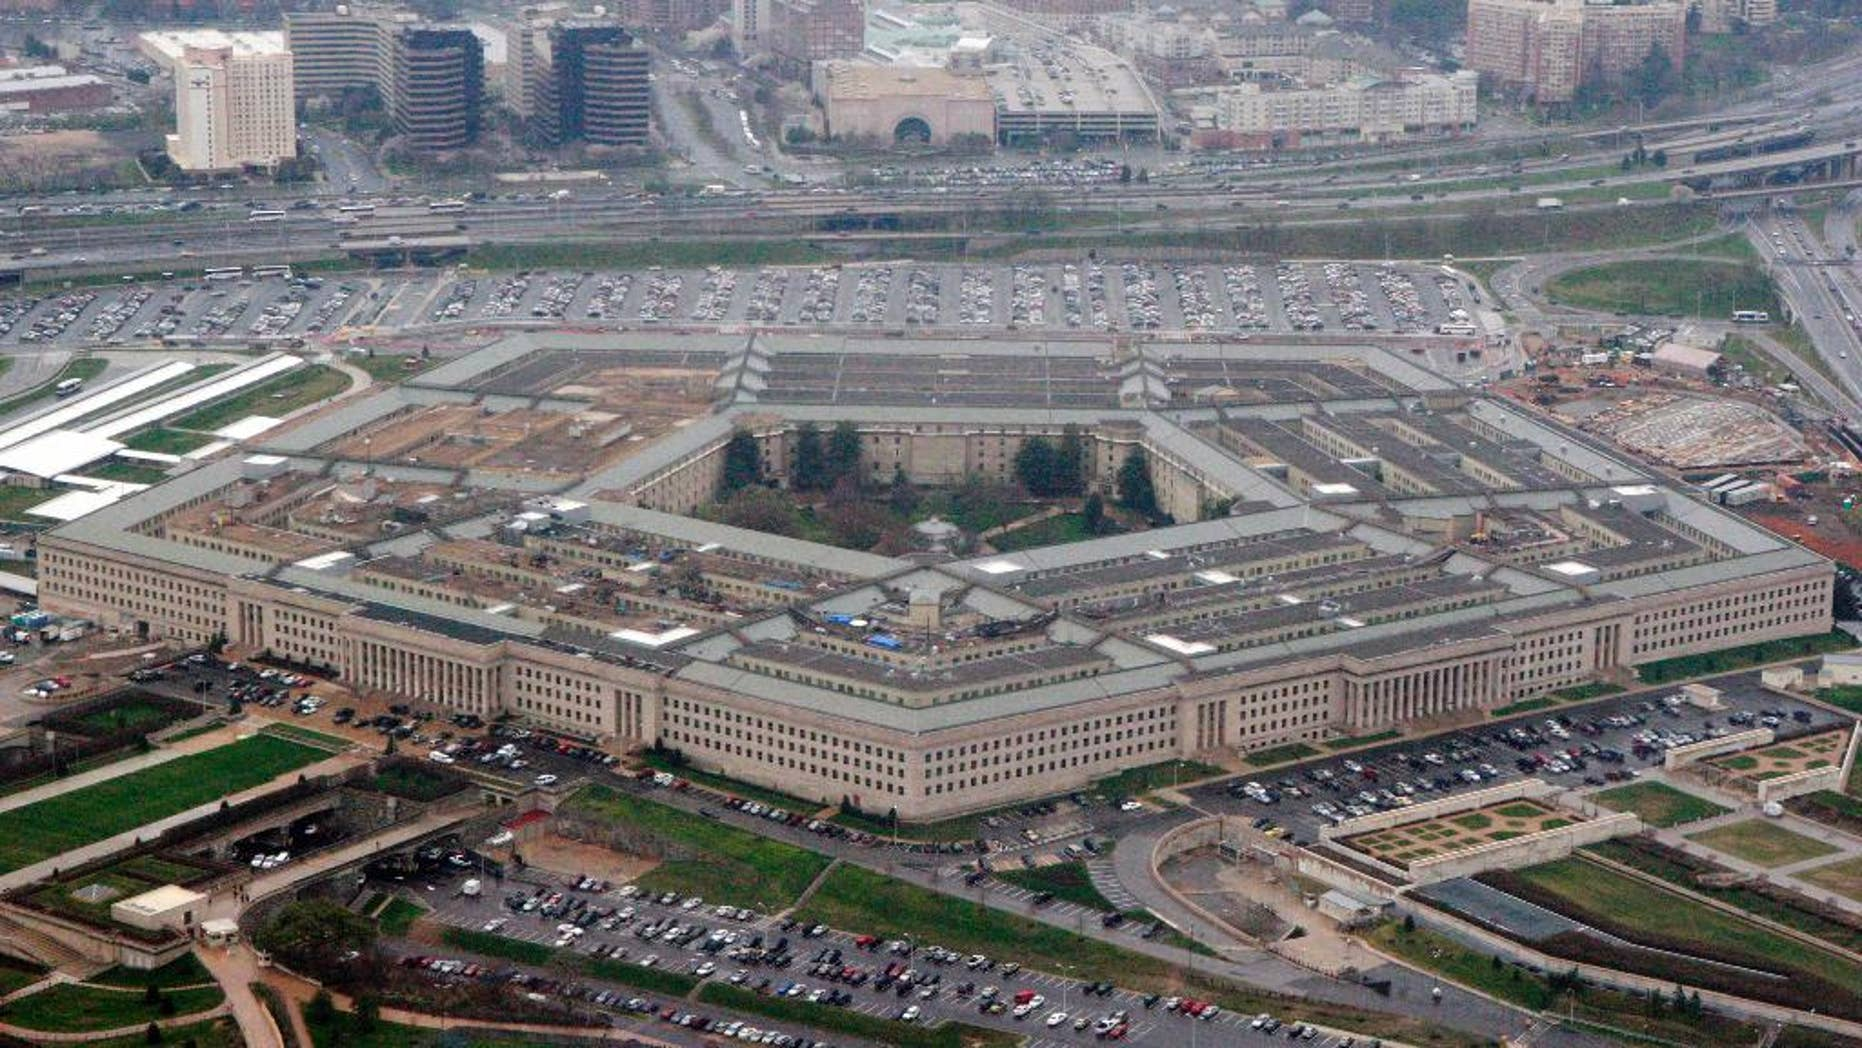 Envelopes 'containing ricin' intercepted at the Pentagon